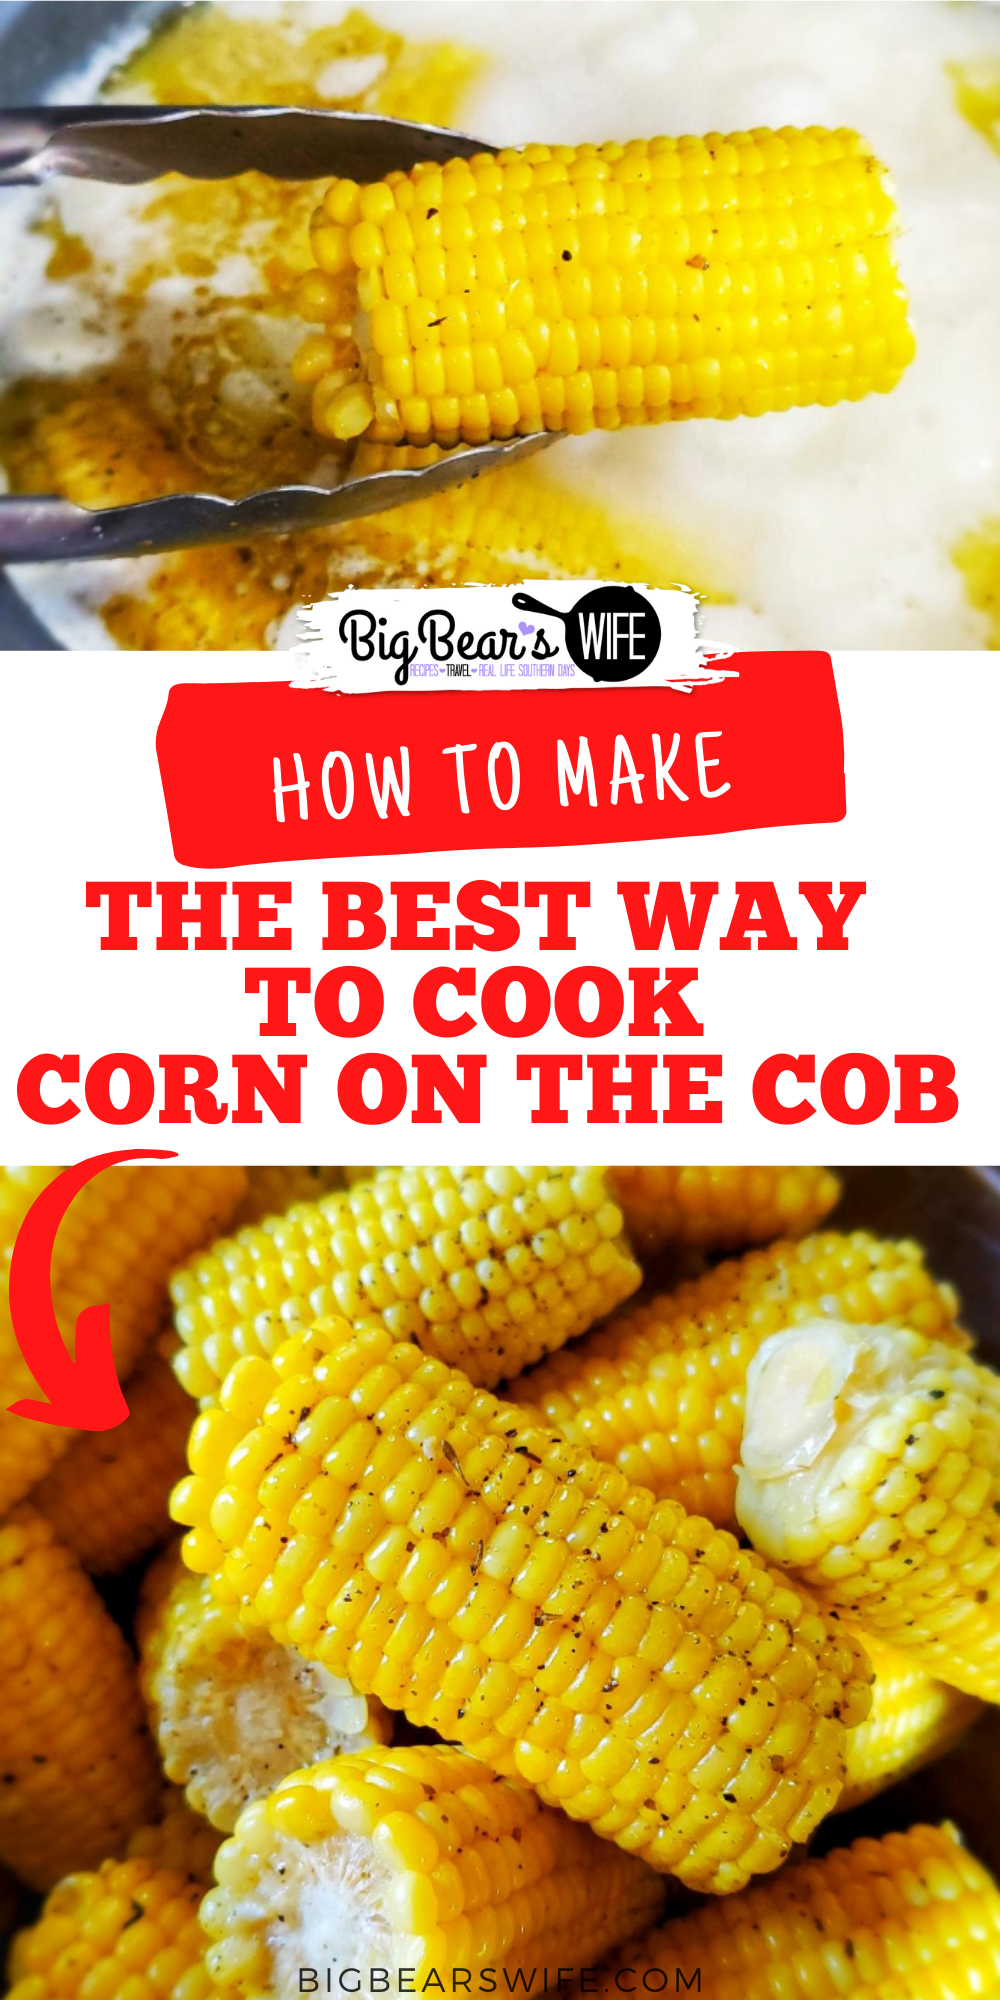 Making Milk Butter Corn on the Cob by boiling corn on the cob in a mix of milk and butter makes some of the most delicious corn on the cob. Boiling corn on the cob in Milk and Butter is the best way to cook corn on the cob! via @bigbearswife